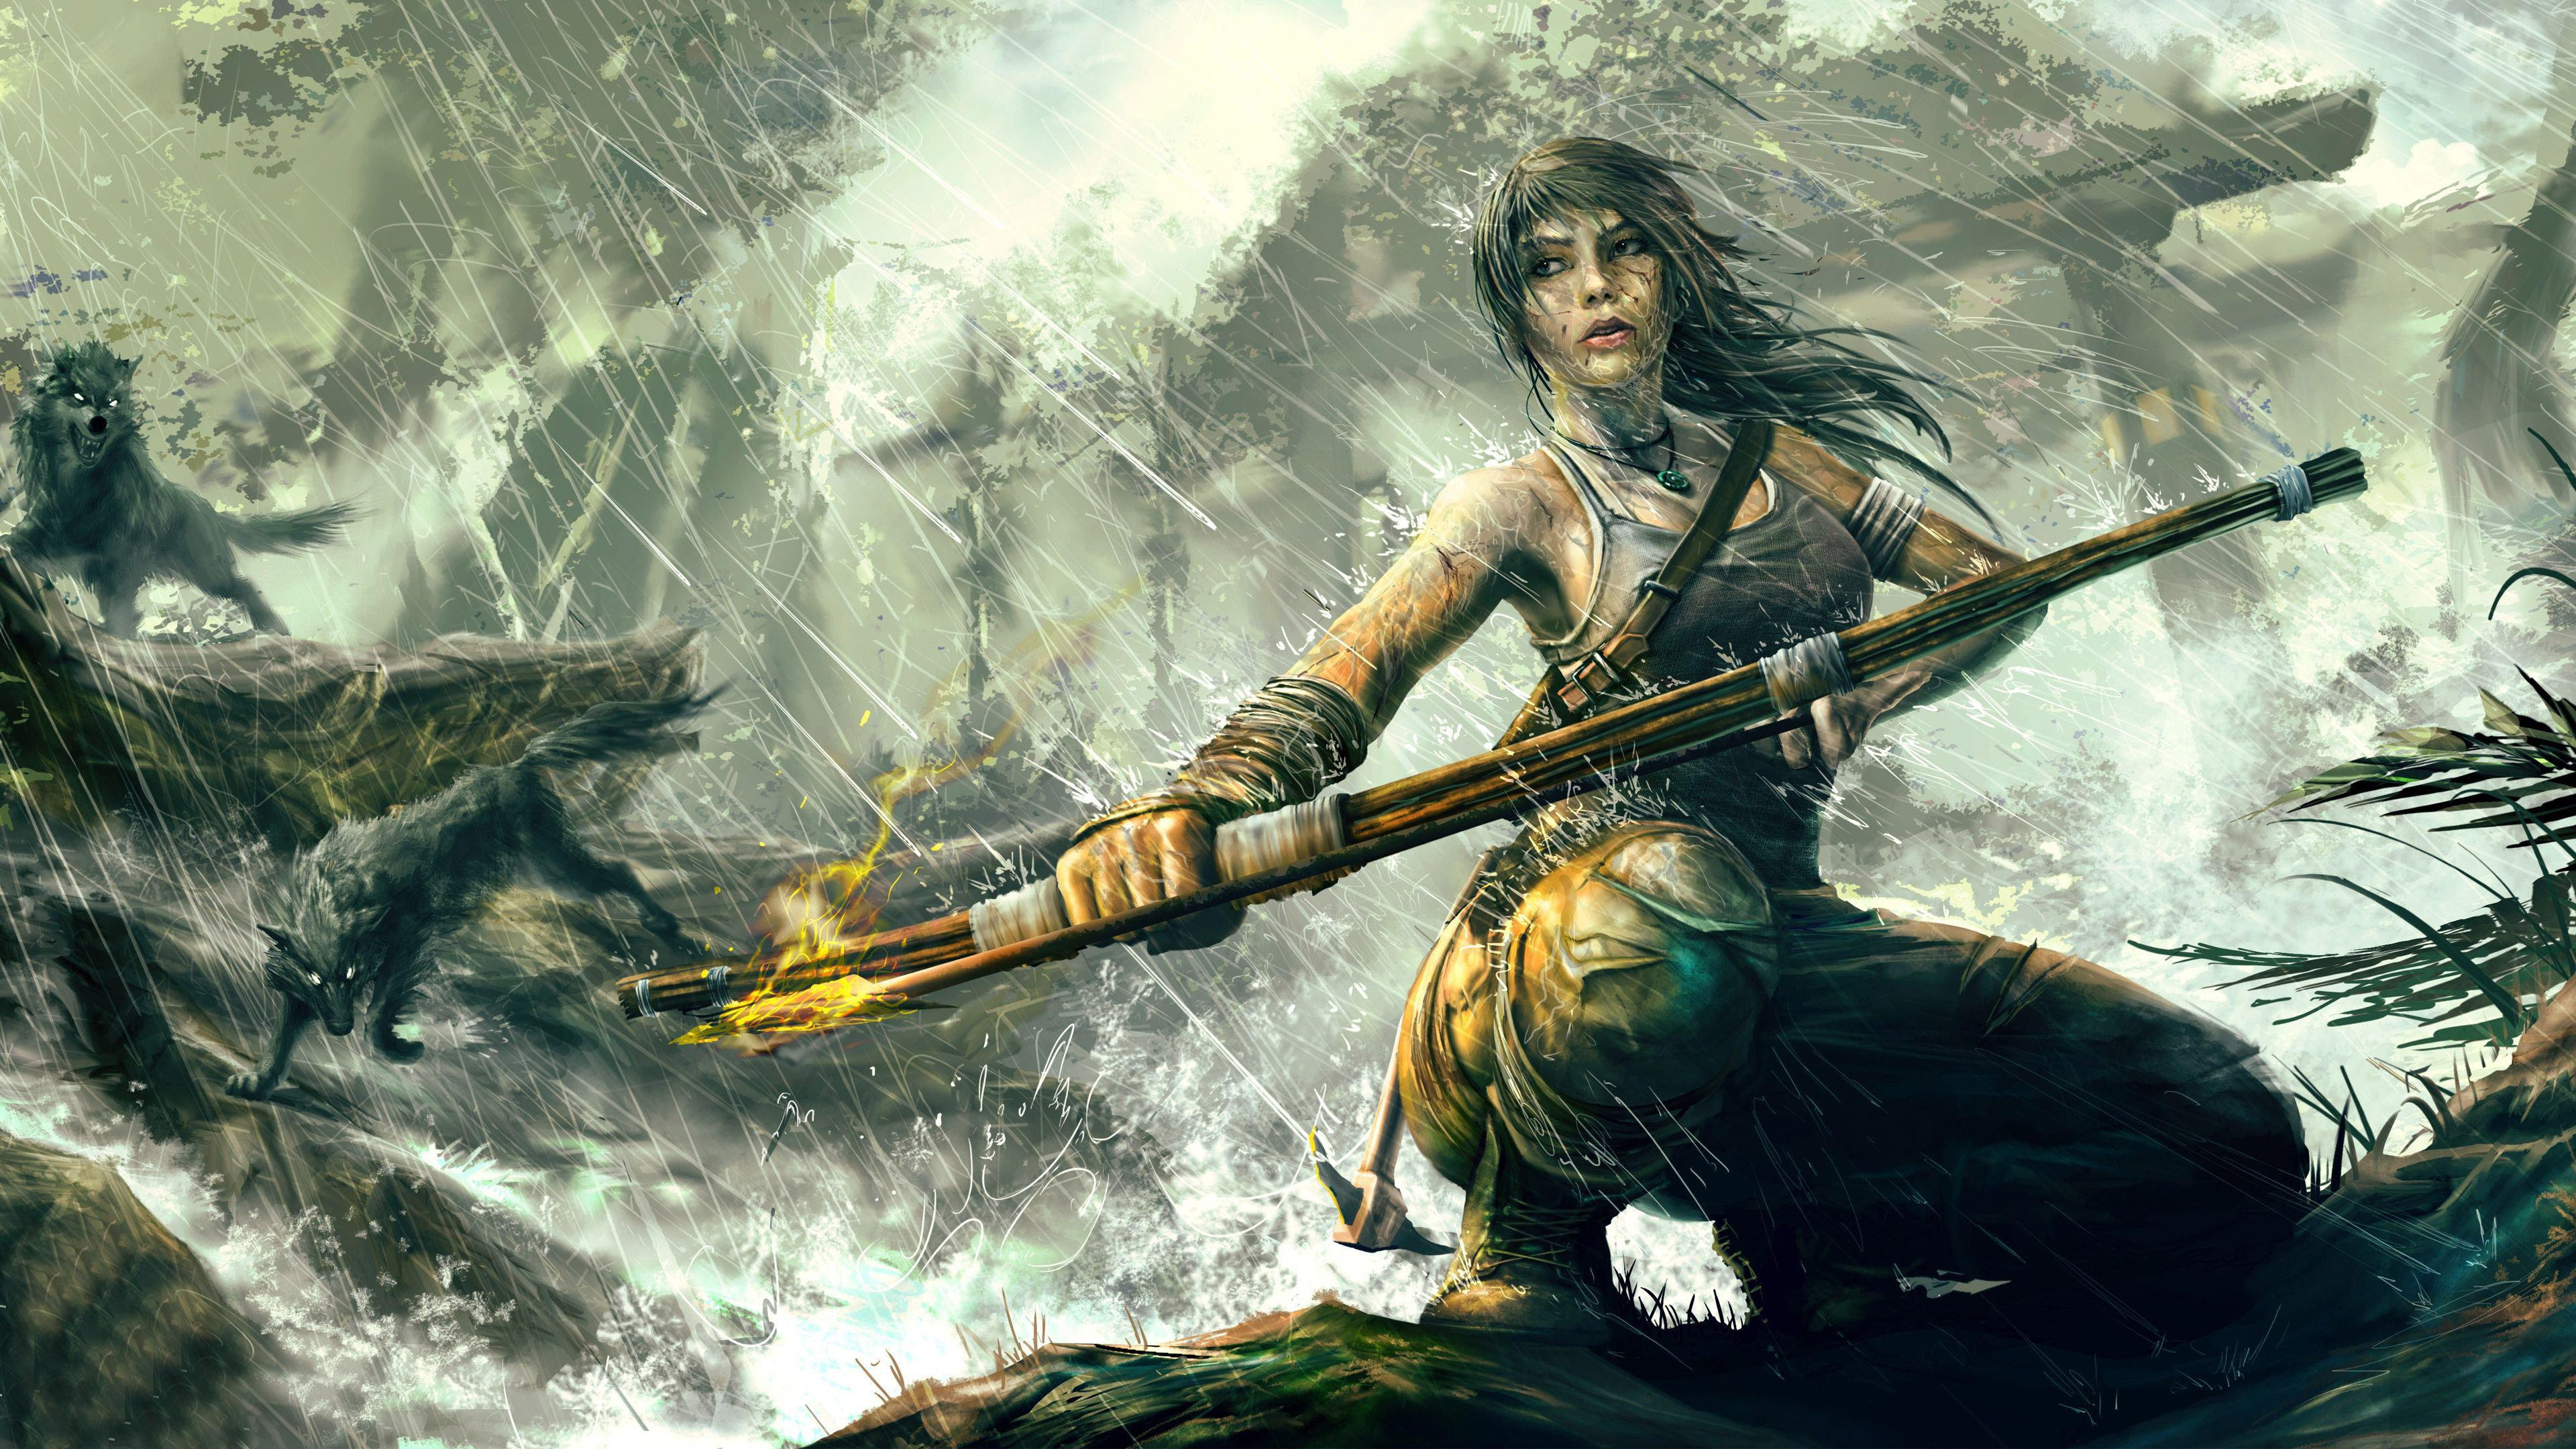 Hd Lara Croft With A Bow In Tomb Raider Wallpaper Download Free